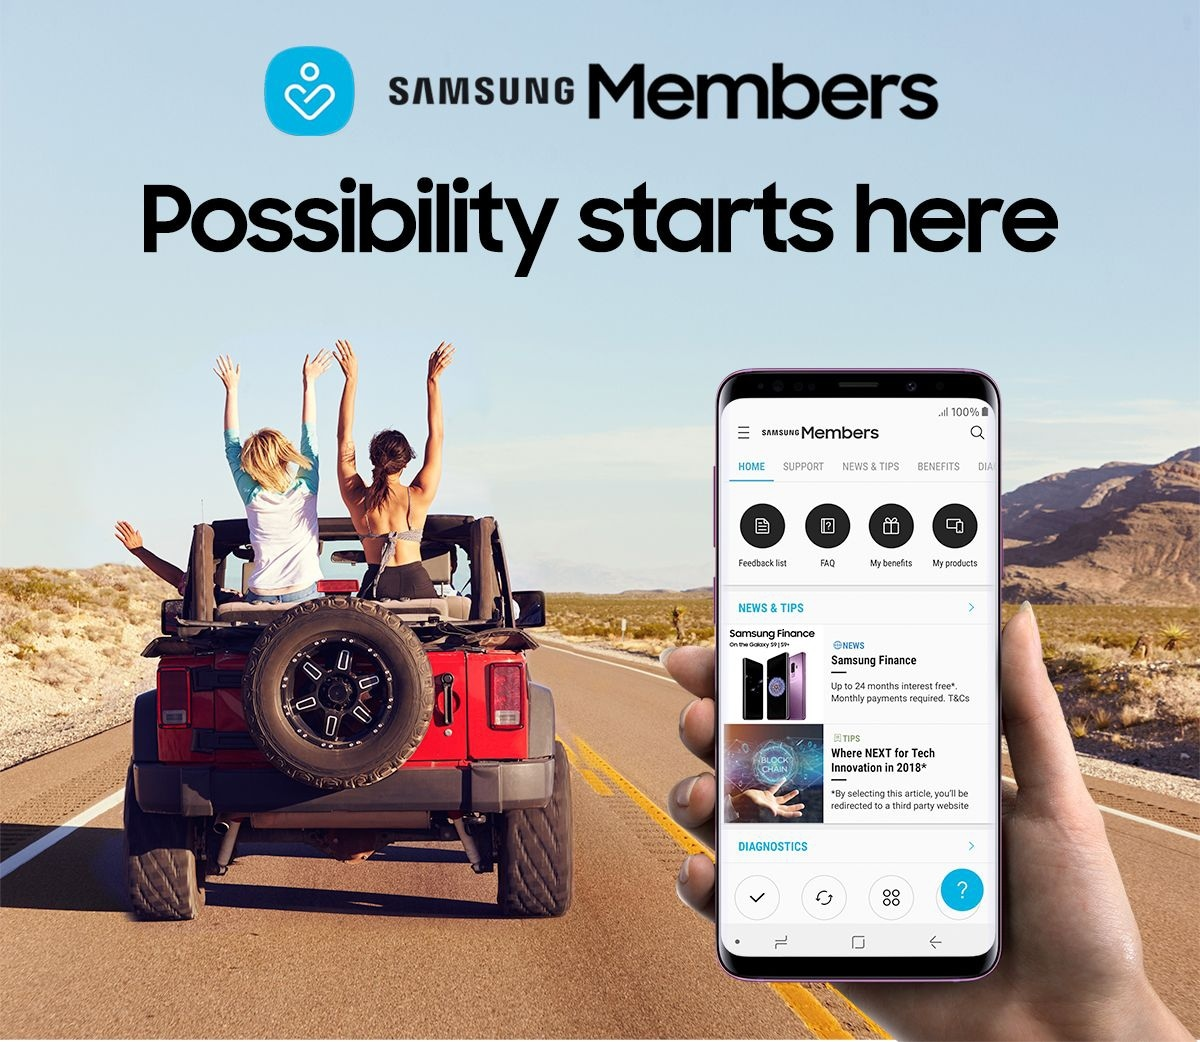 SAMSUNG Members | Possibility starts here